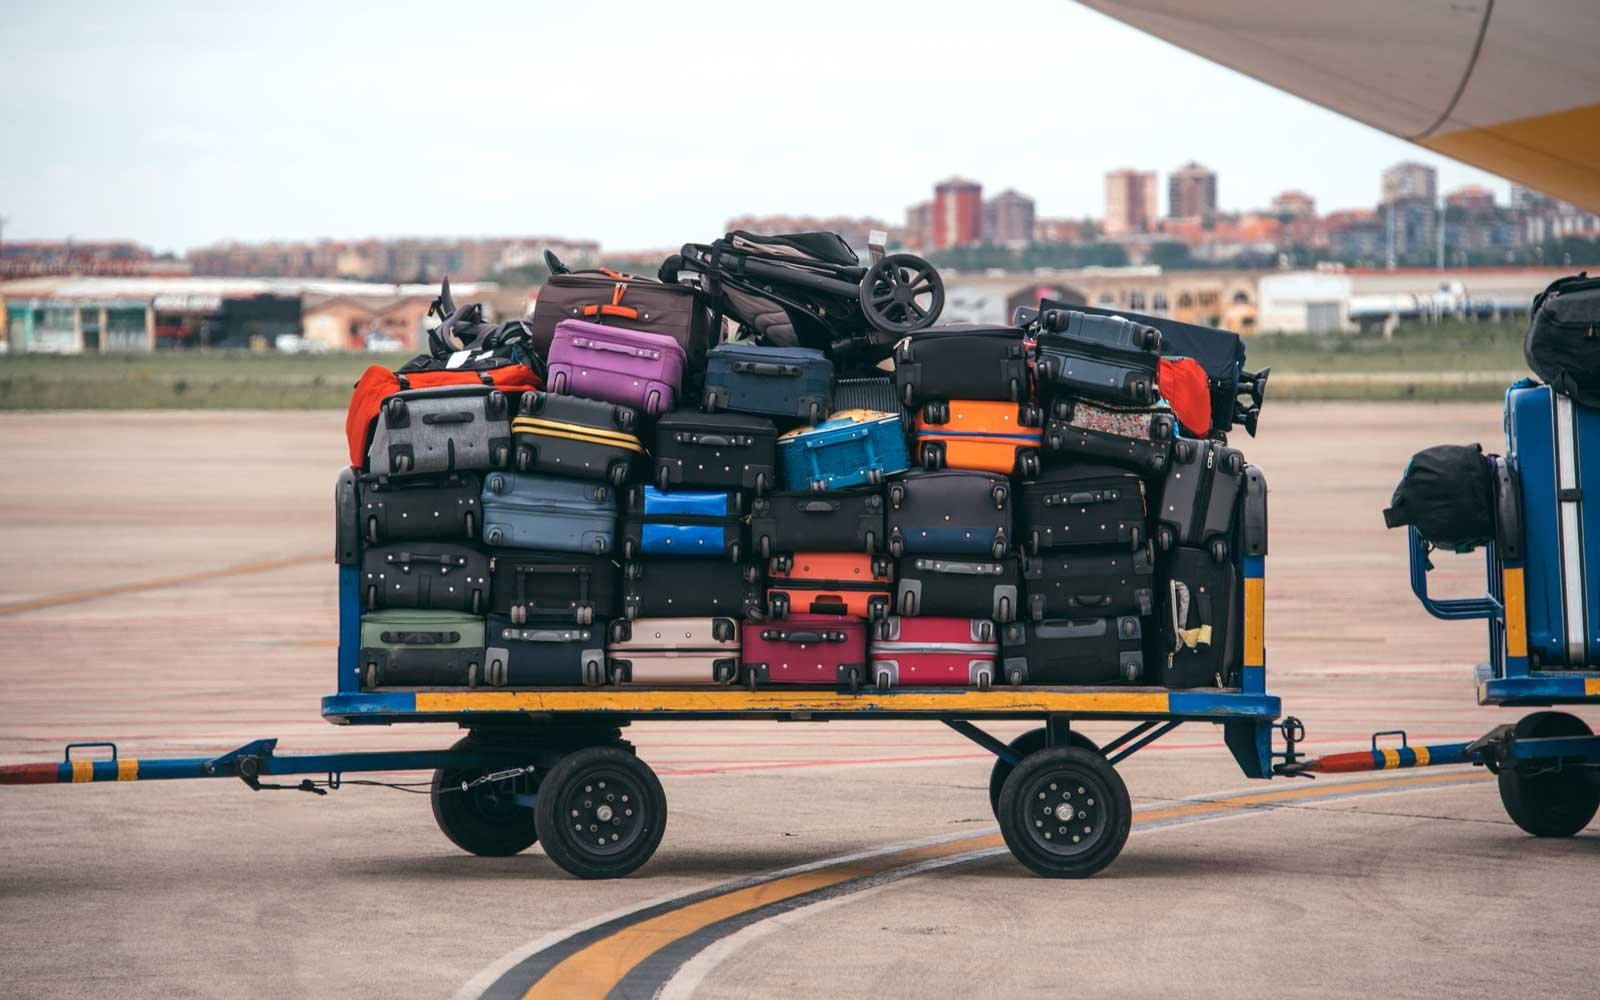 Cart with luggage at an airport